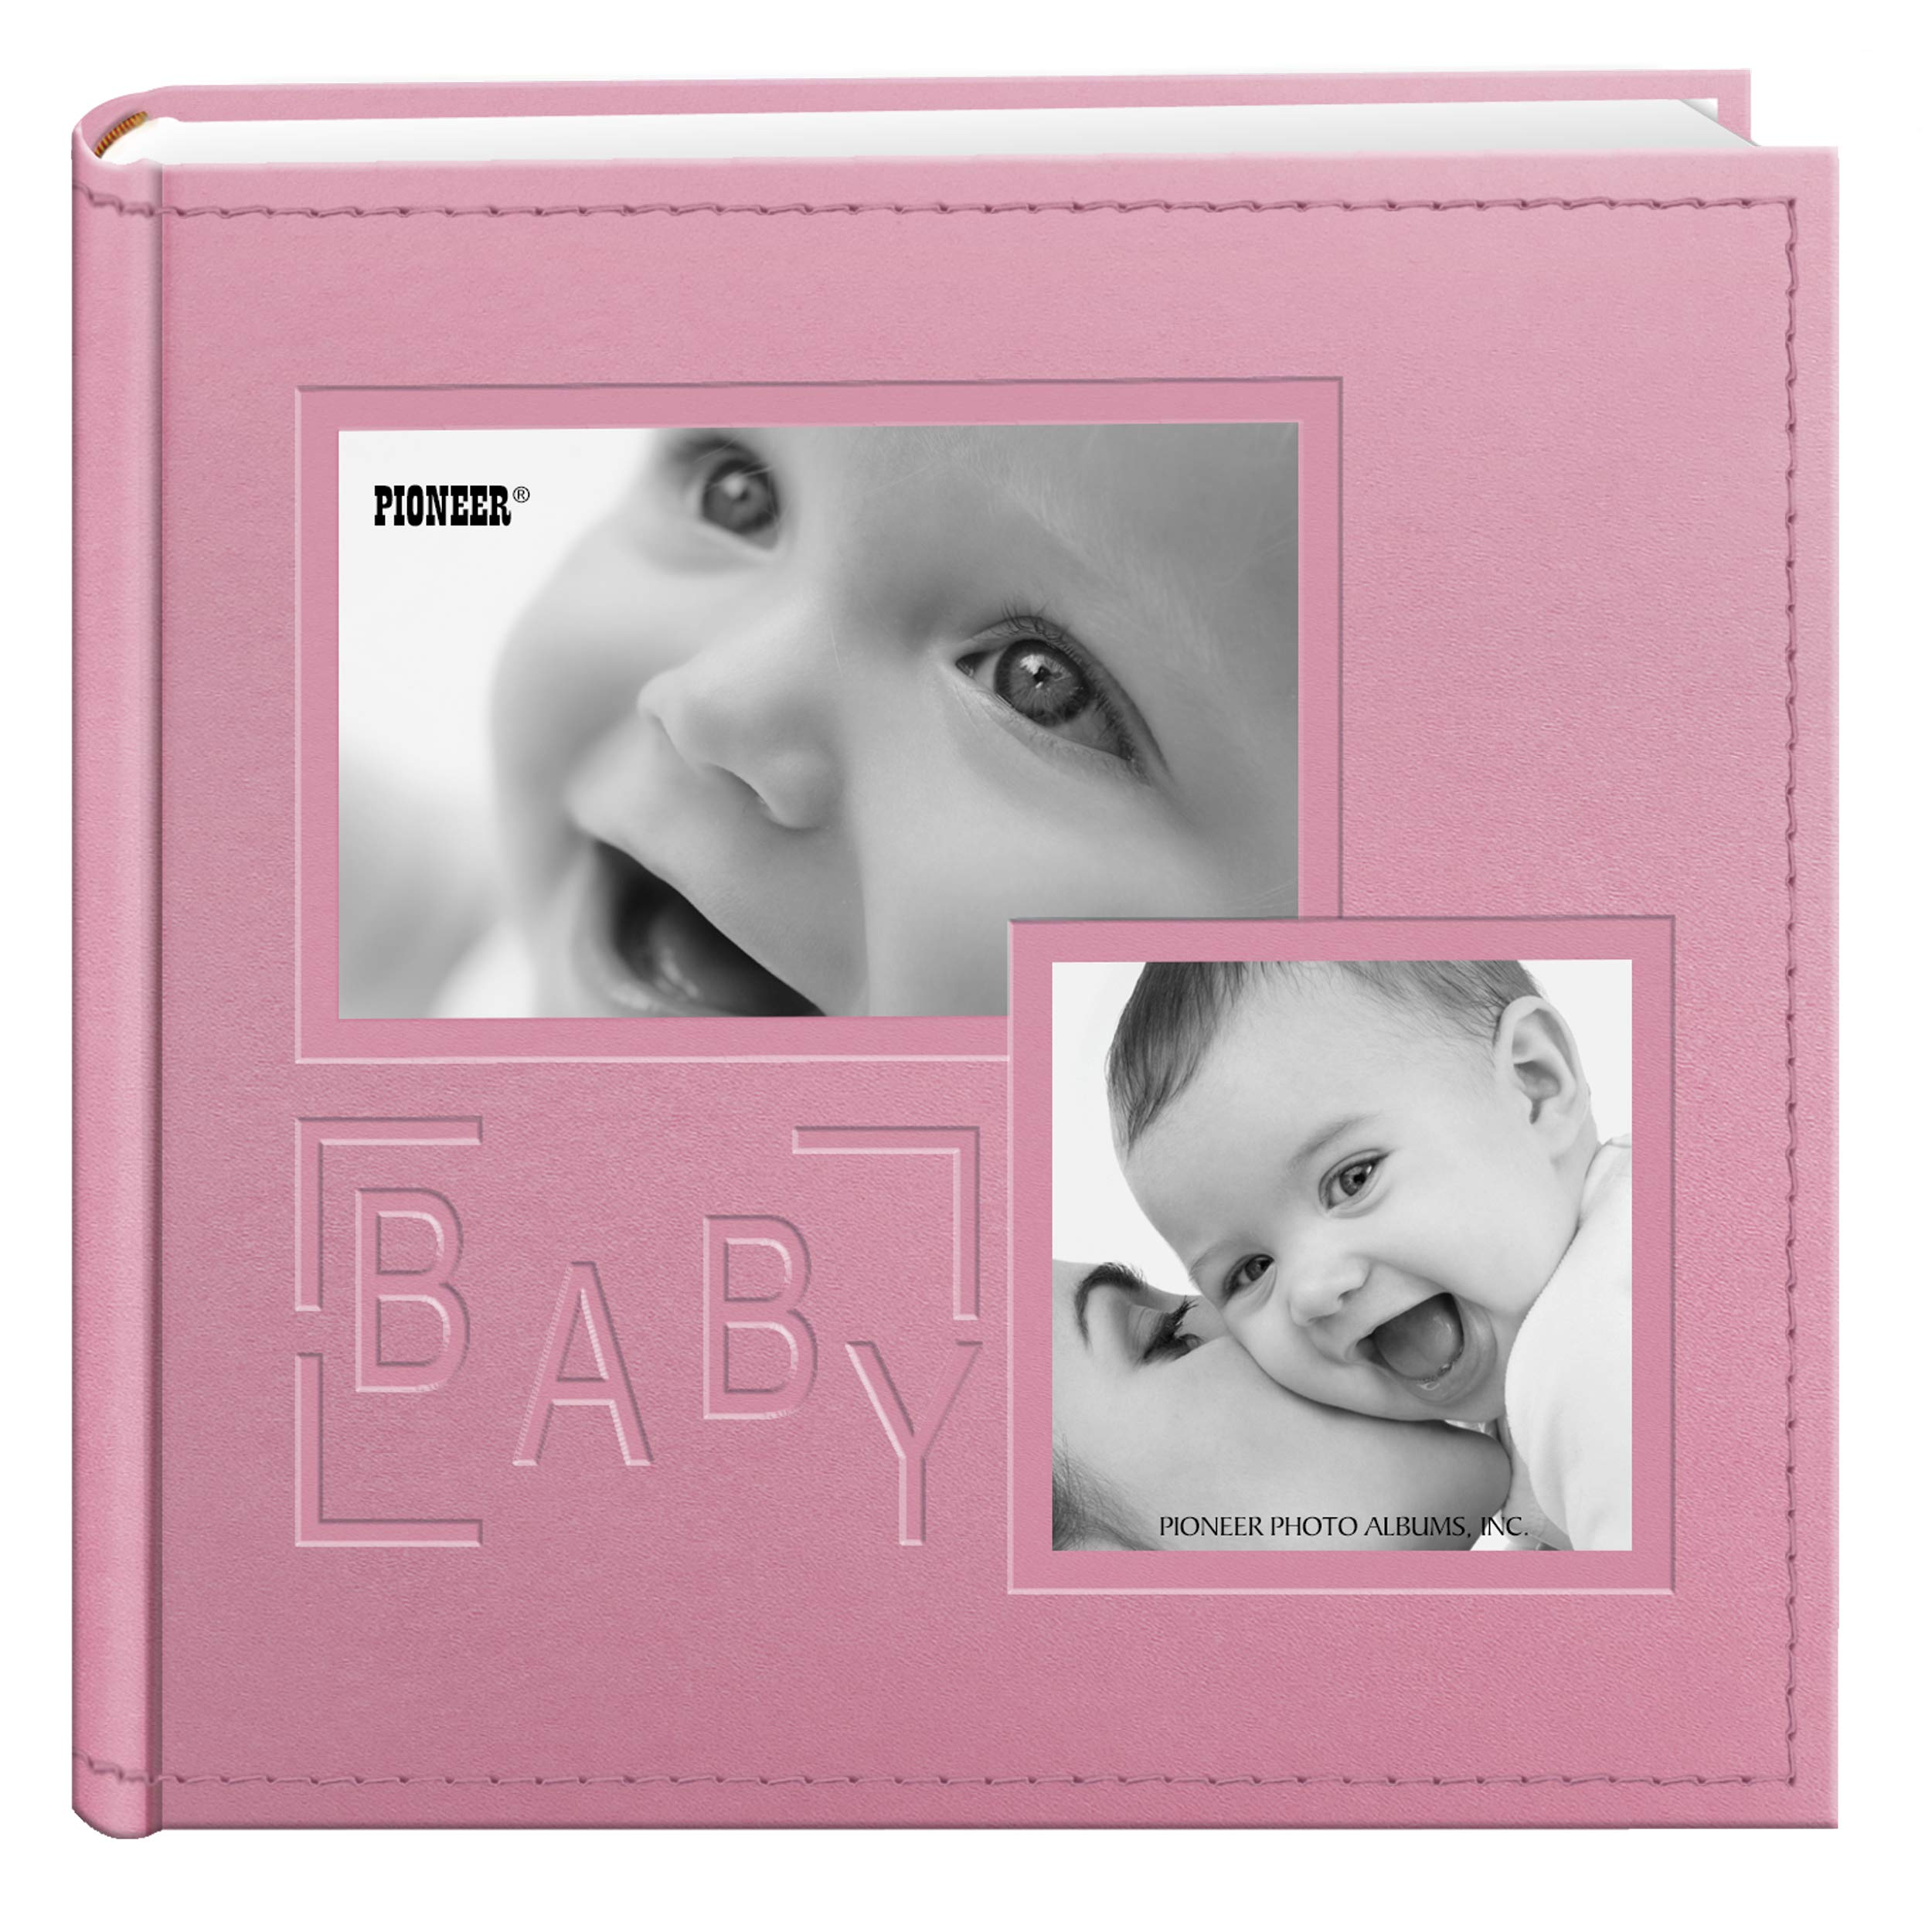 Pioneer Photo Albums 200-Pocket Embossed Baby Leatherette Frame Cover Album for 4 by 6-Inch Prints, Pink by Pioneer Photo Albums